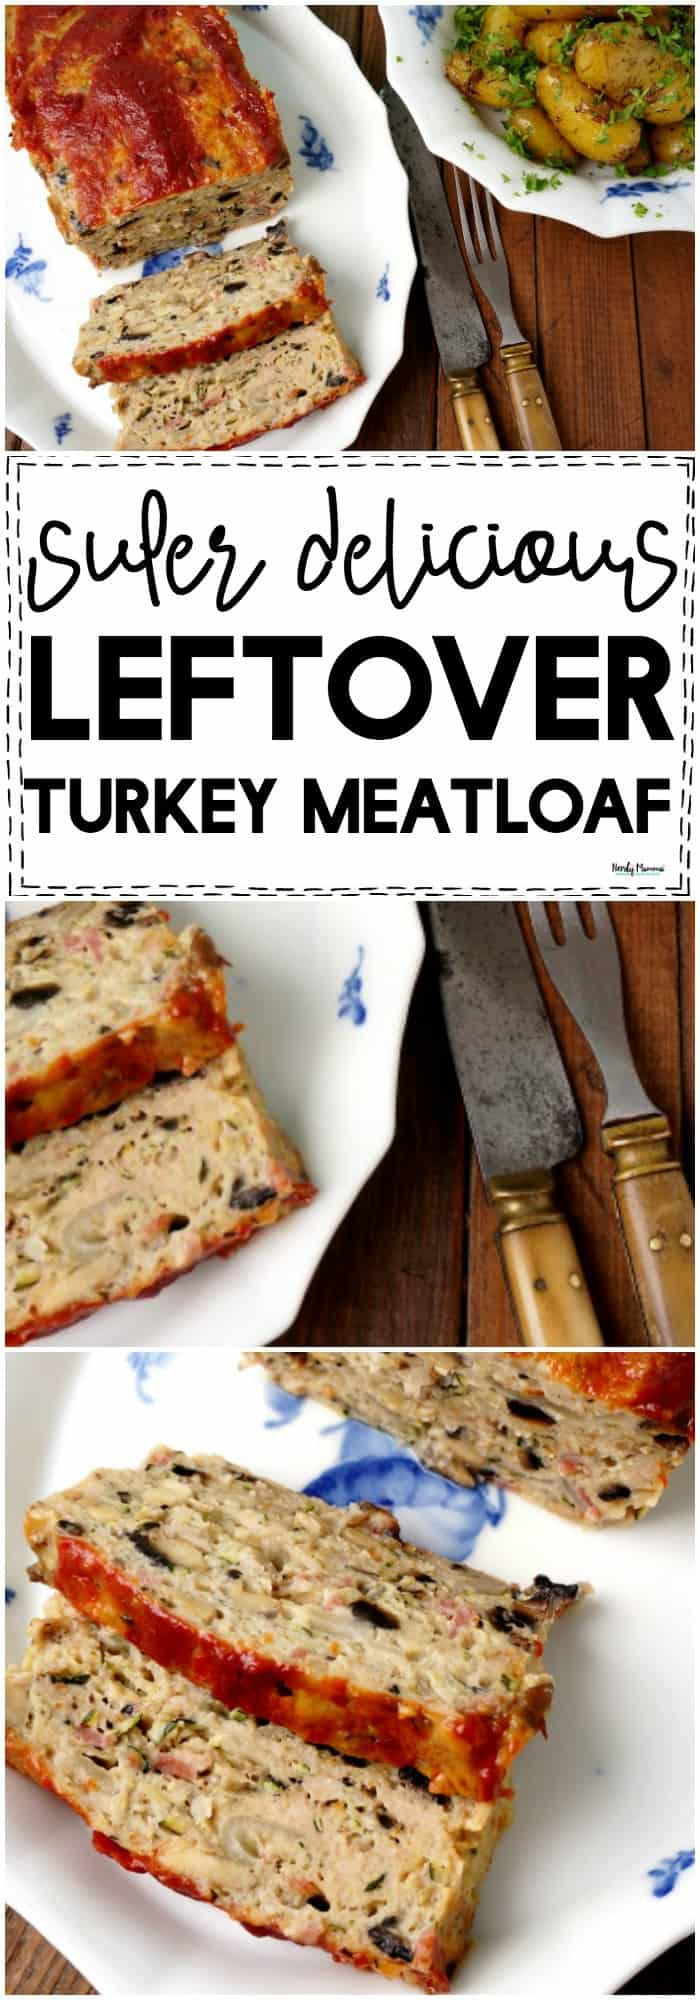 OMG this is the BEST Recipe for Thanksgiving Leftovers I have EVER tried! Flipping delicious leftover turkey meatloaf recipe! #meatloaf #leftovers #turkey #Thanksgiving #easydinners #easyrecipe #turkeymeatloaf